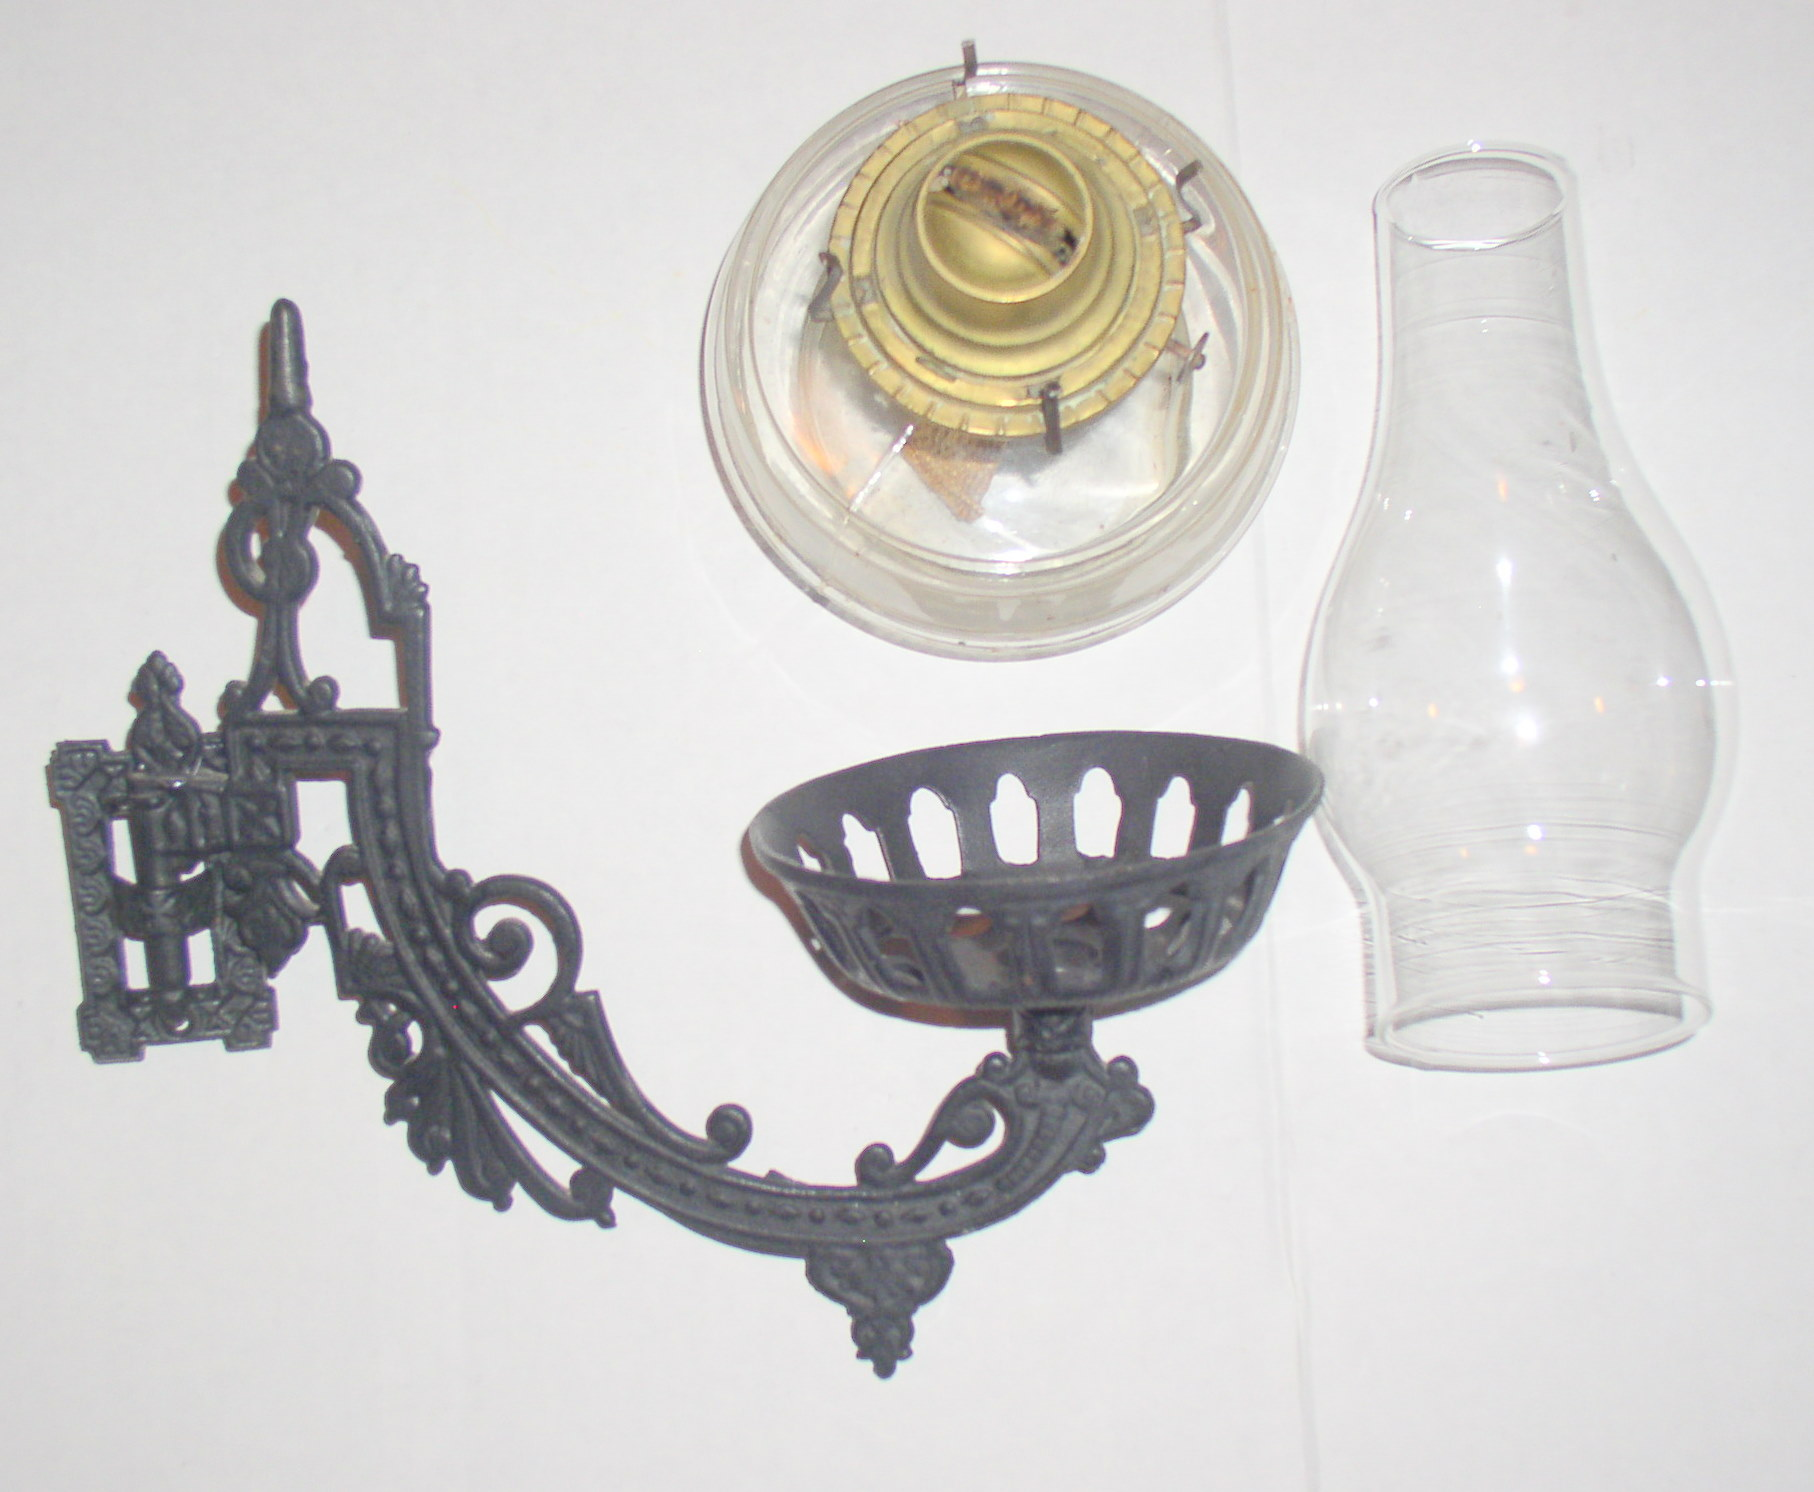 Iron Wall Brackets For Lamps : Antique Cast Iron Oil Lamp Wall Bracket Lamp Complete Thingery Previews Postviews & Thoughts